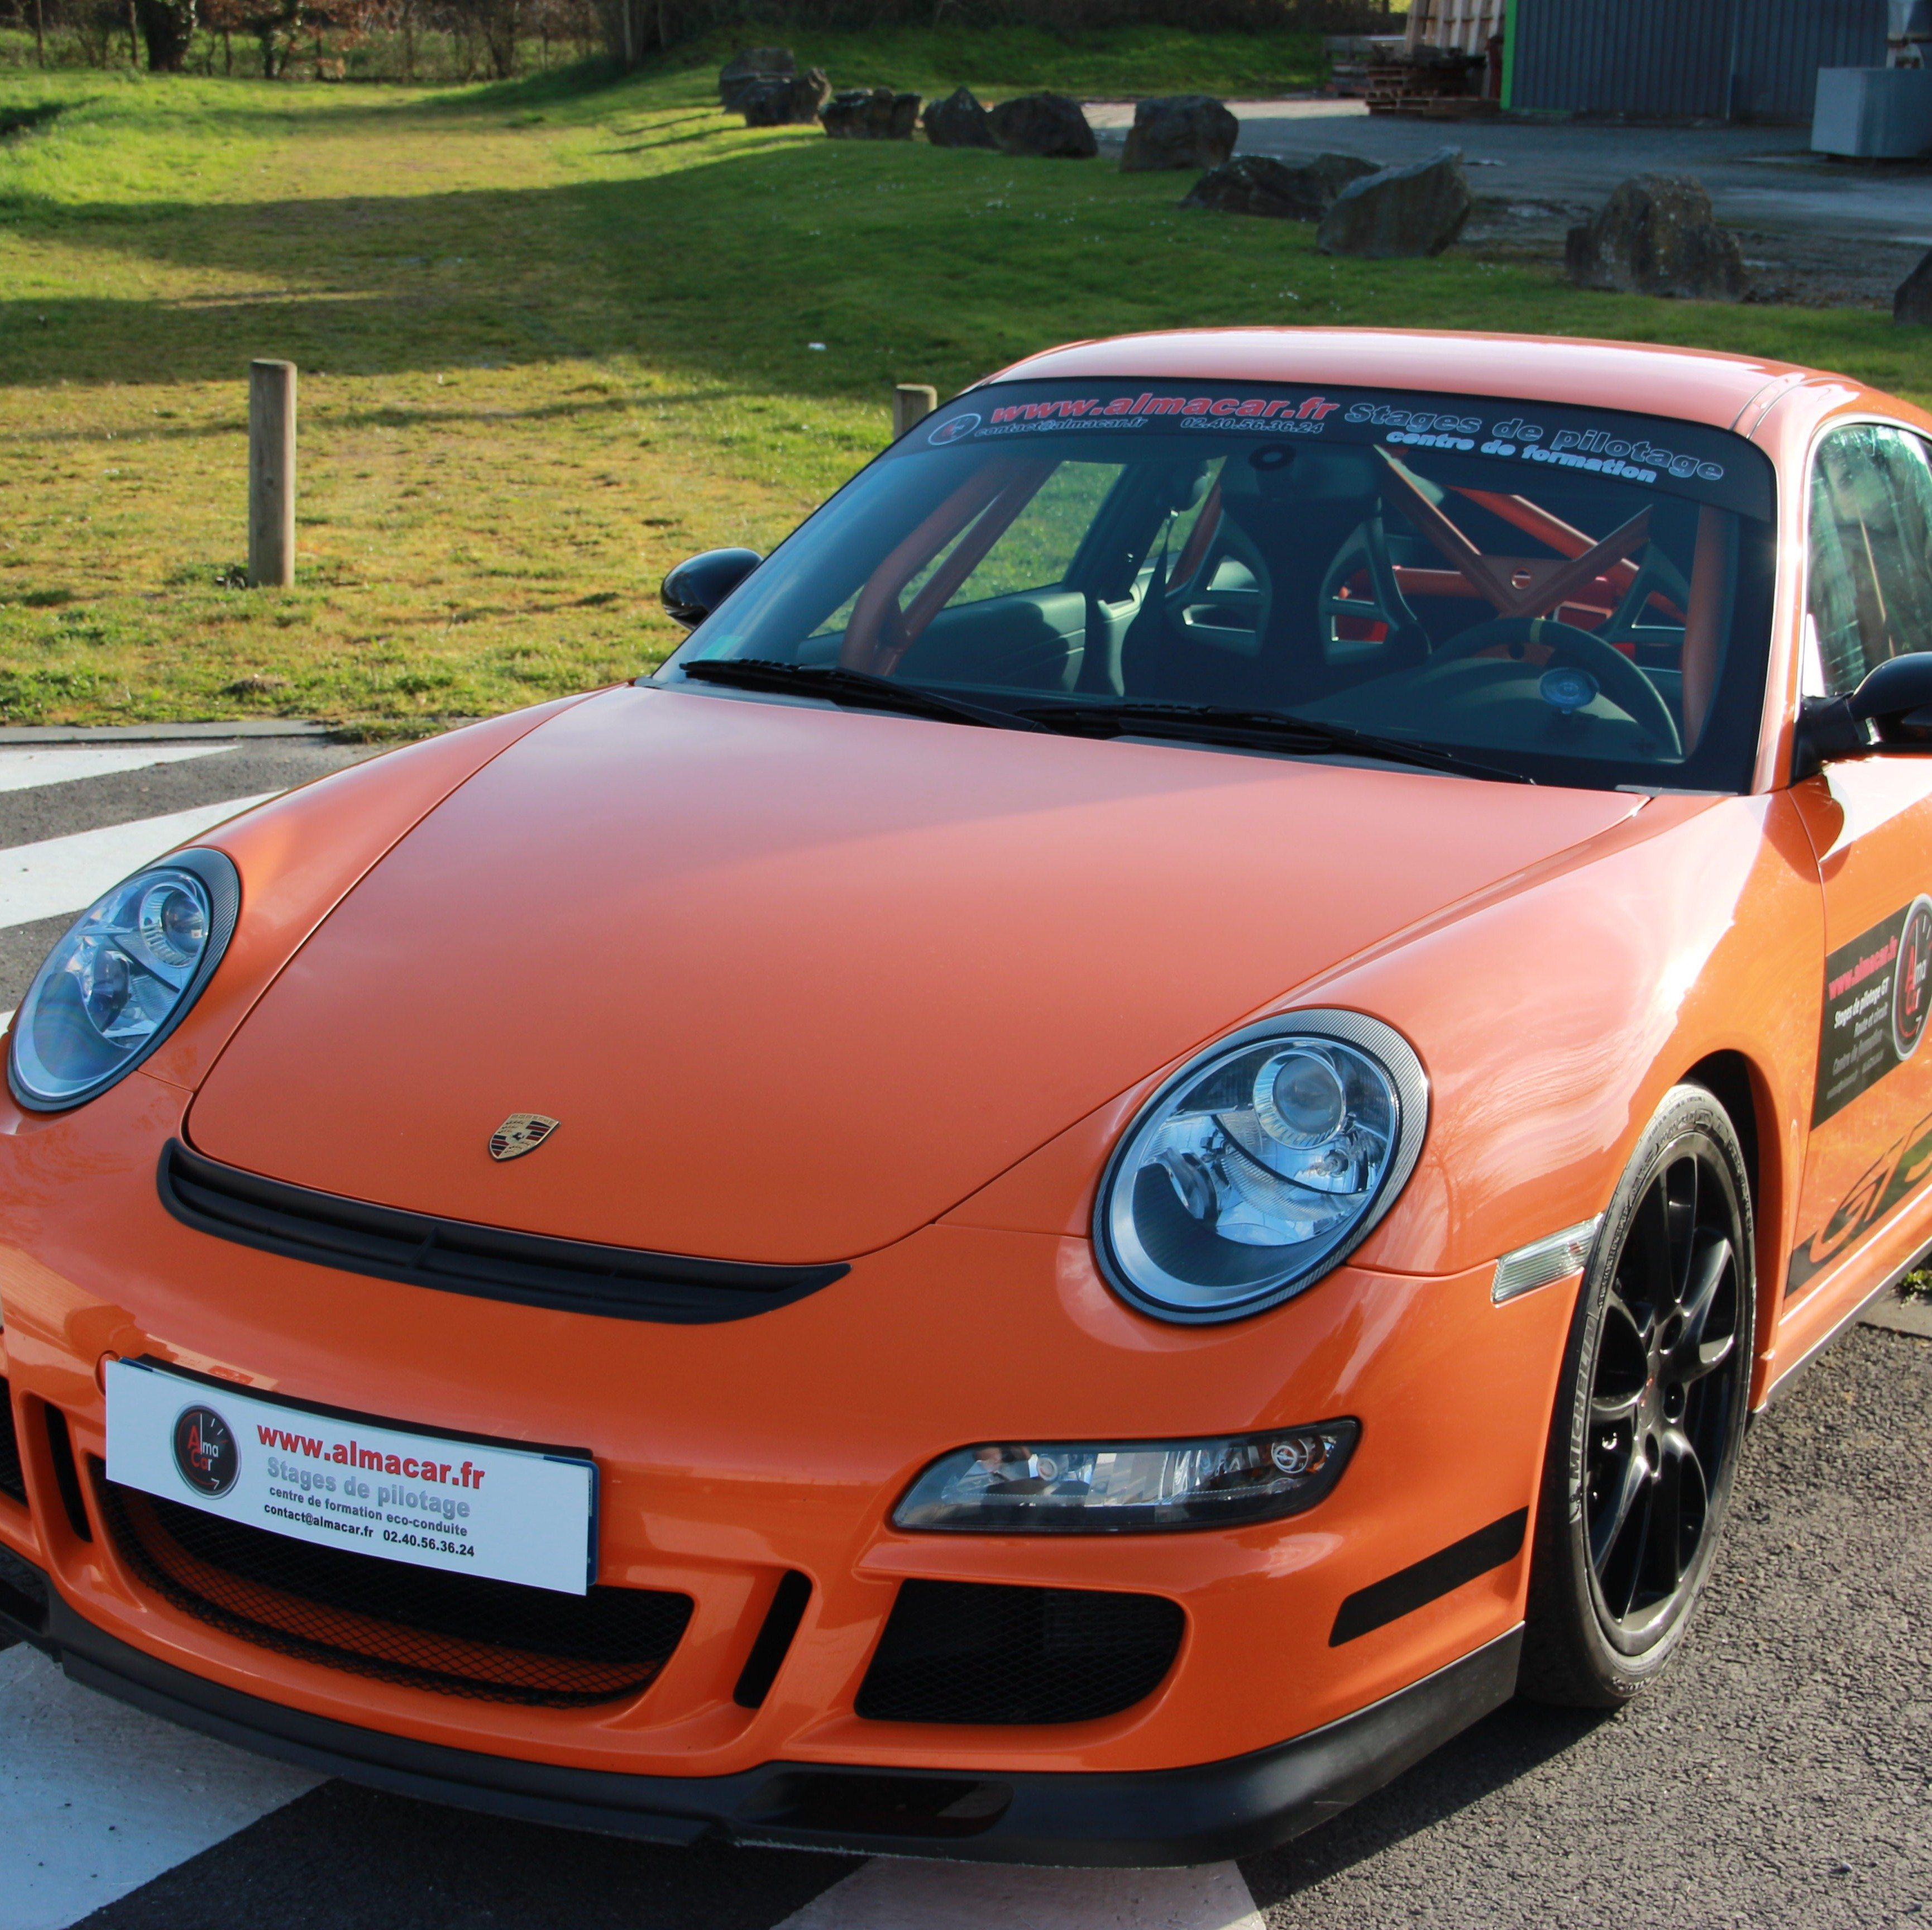 pilotage porsche 997 gt3 rs fay de bretagne court. Black Bedroom Furniture Sets. Home Design Ideas